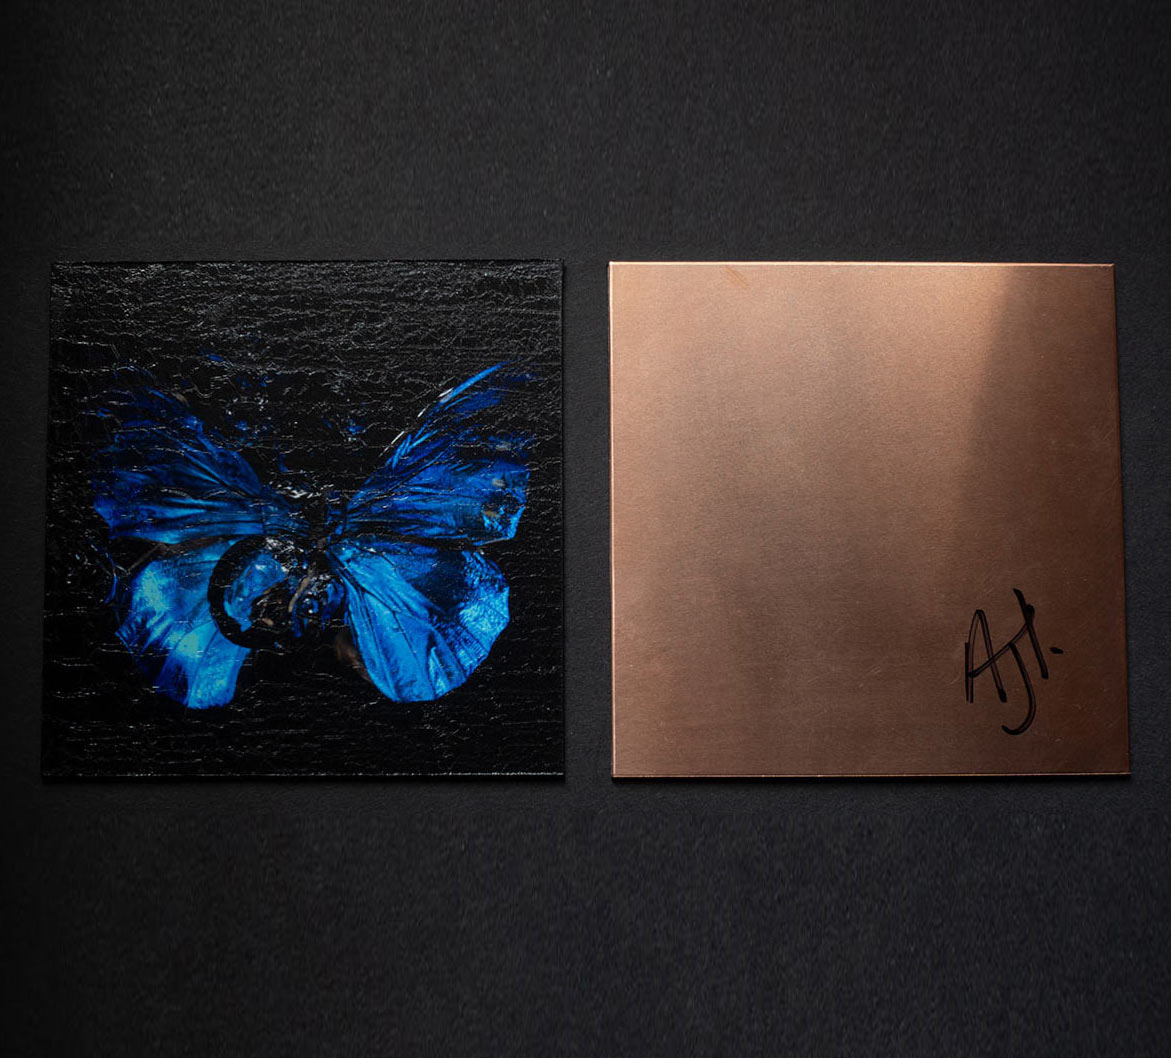 each a unique 10 x 10 cm chromogenic print mounted onto pure recycled copper